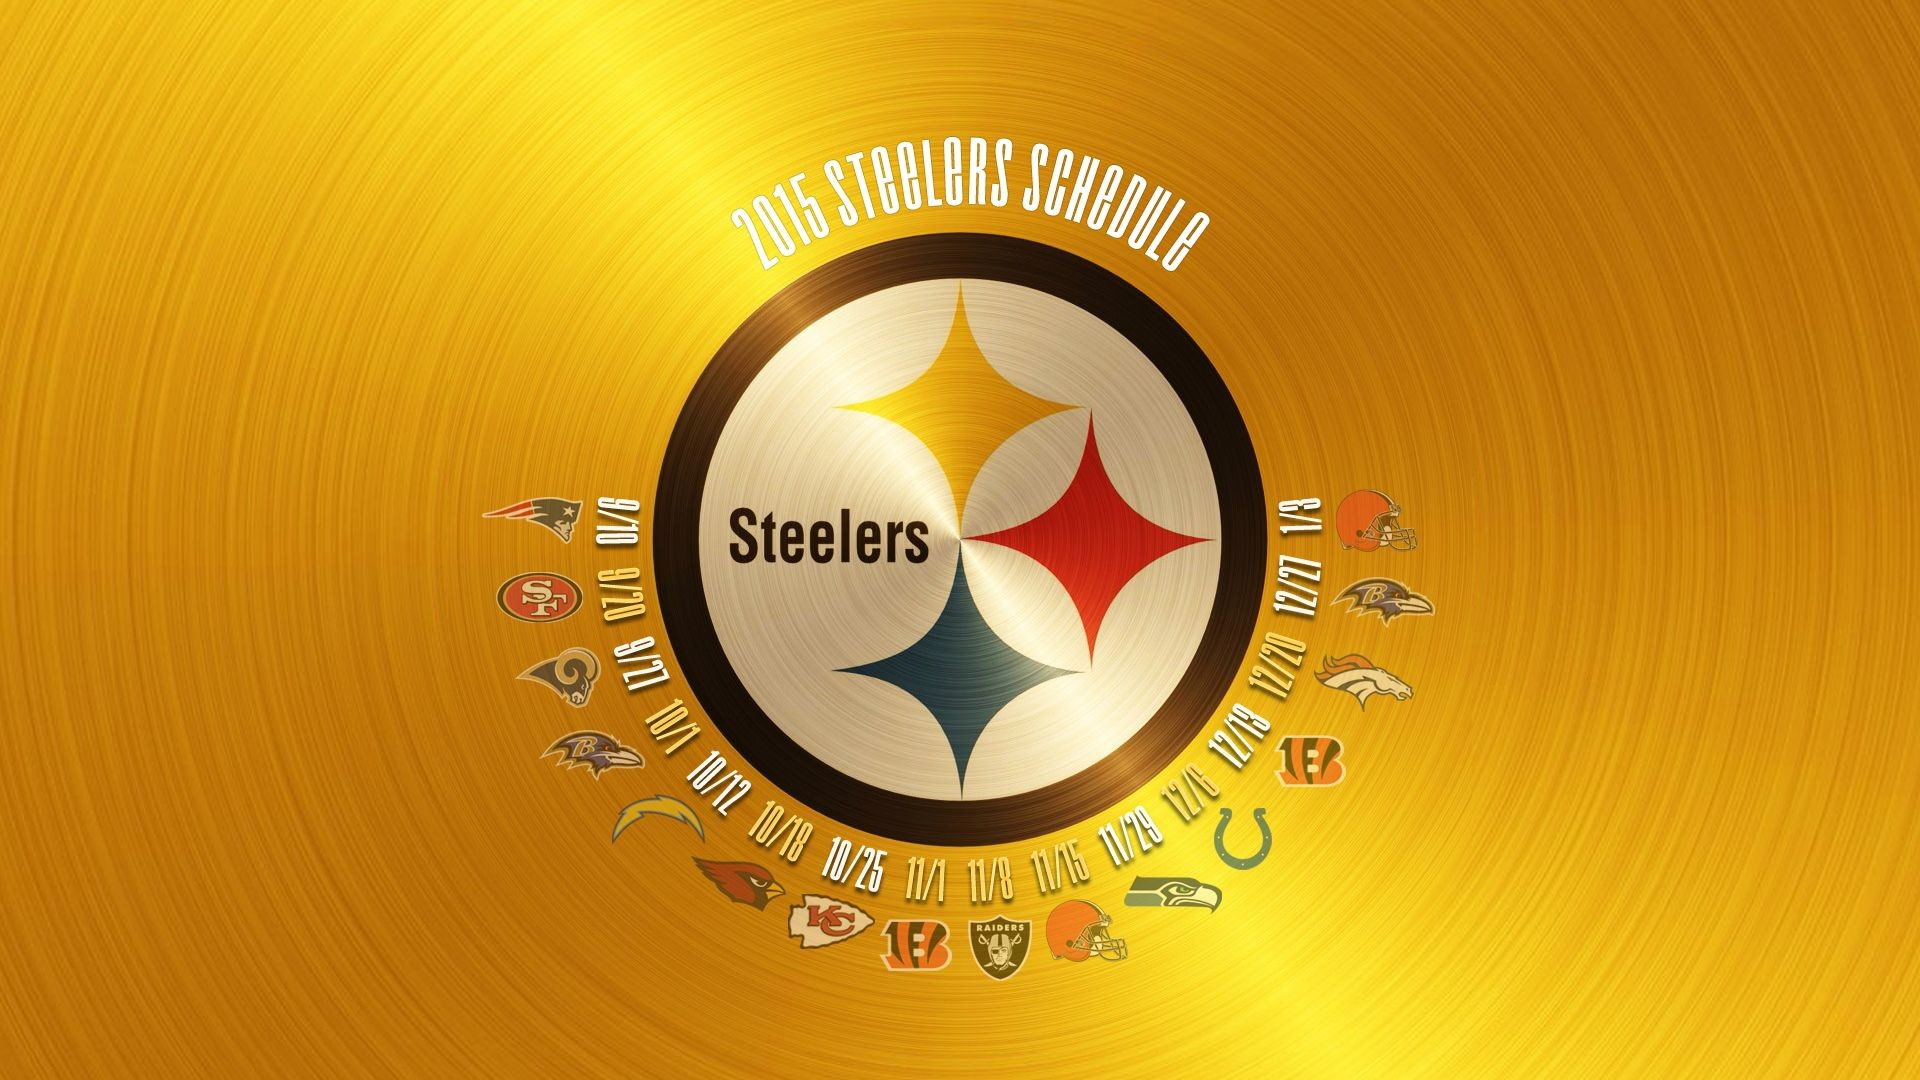 1920x1080 Ipad Wallpapers With The Pittsburgh Steelers Steelers Wallpaper 2018 2898736 Hd Wallpaper Backgrounds Download